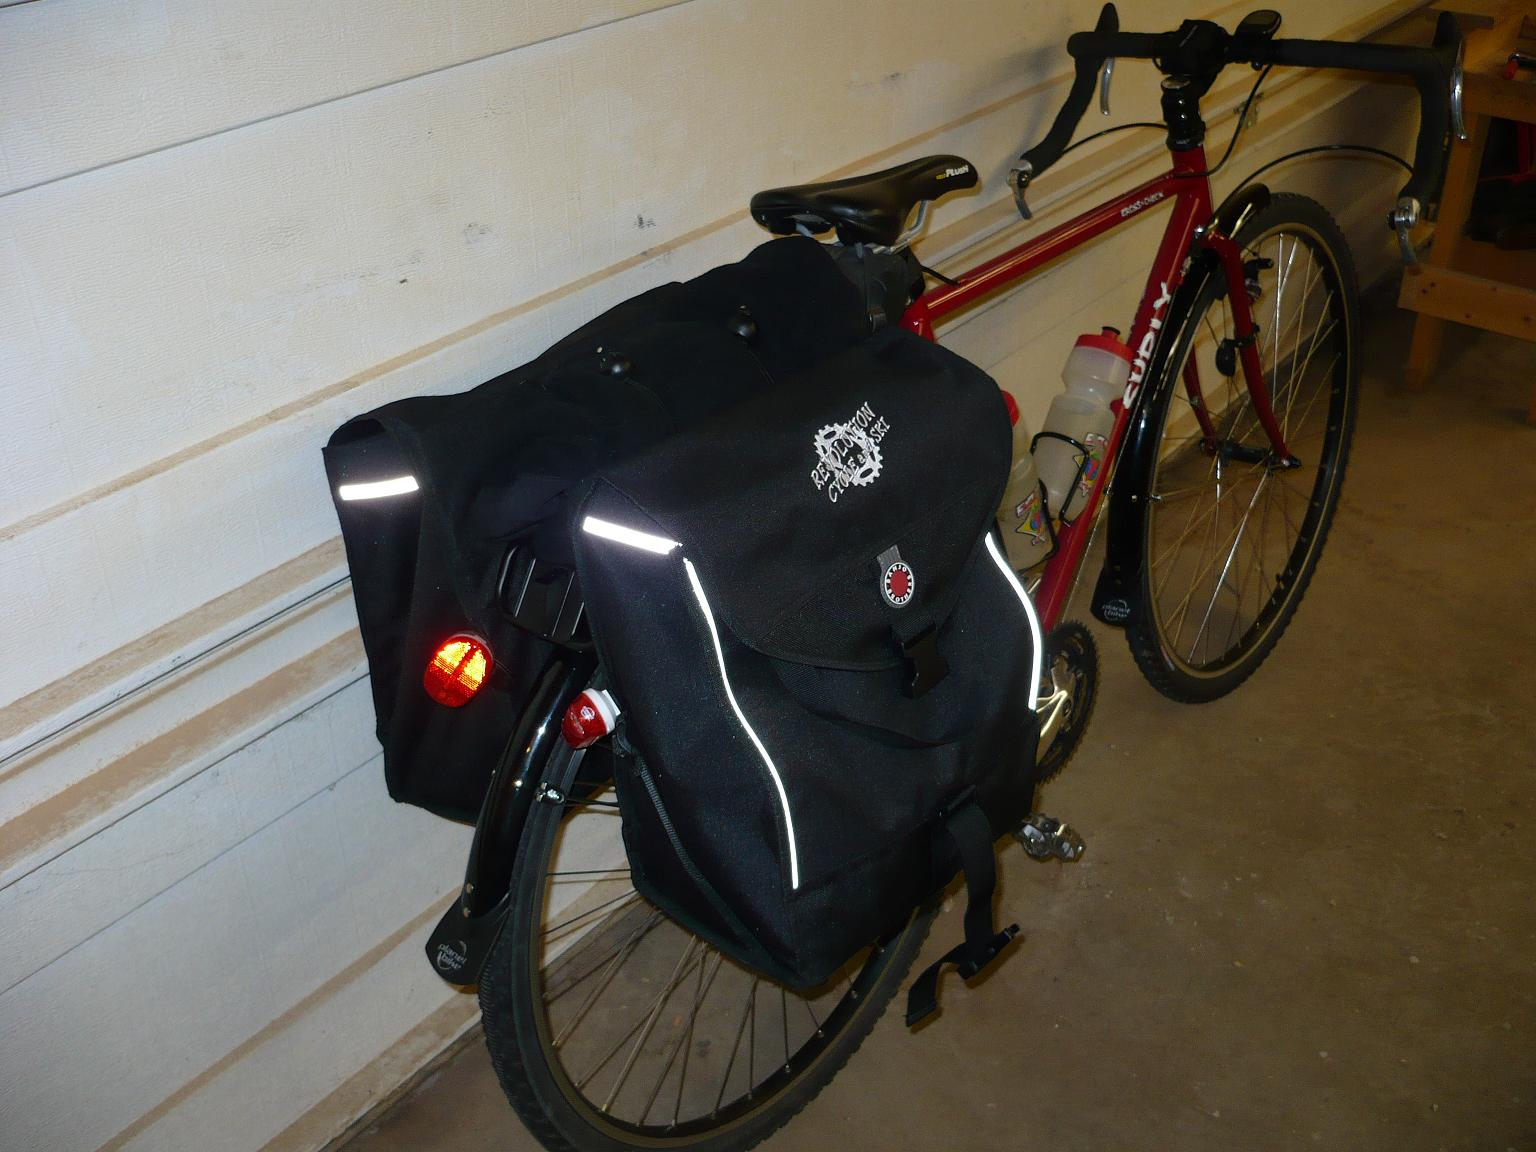 pics of your panniers please-p1010805.jpg